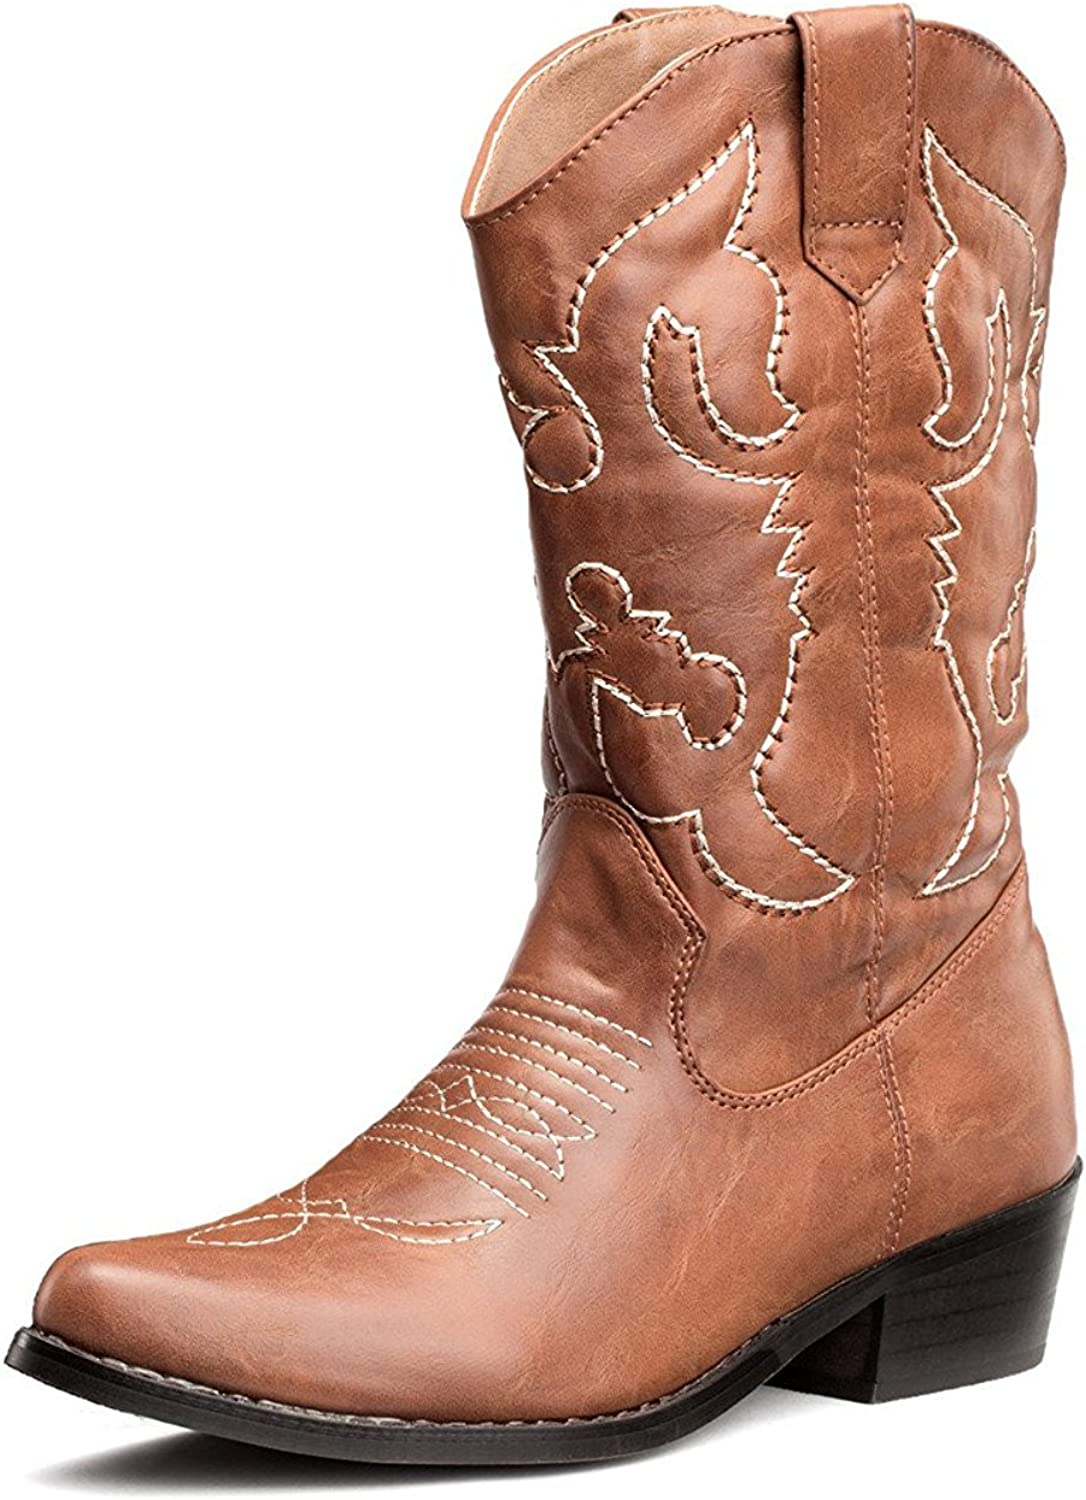 SheSole Women's Western Cowgirl Cowboy Boots